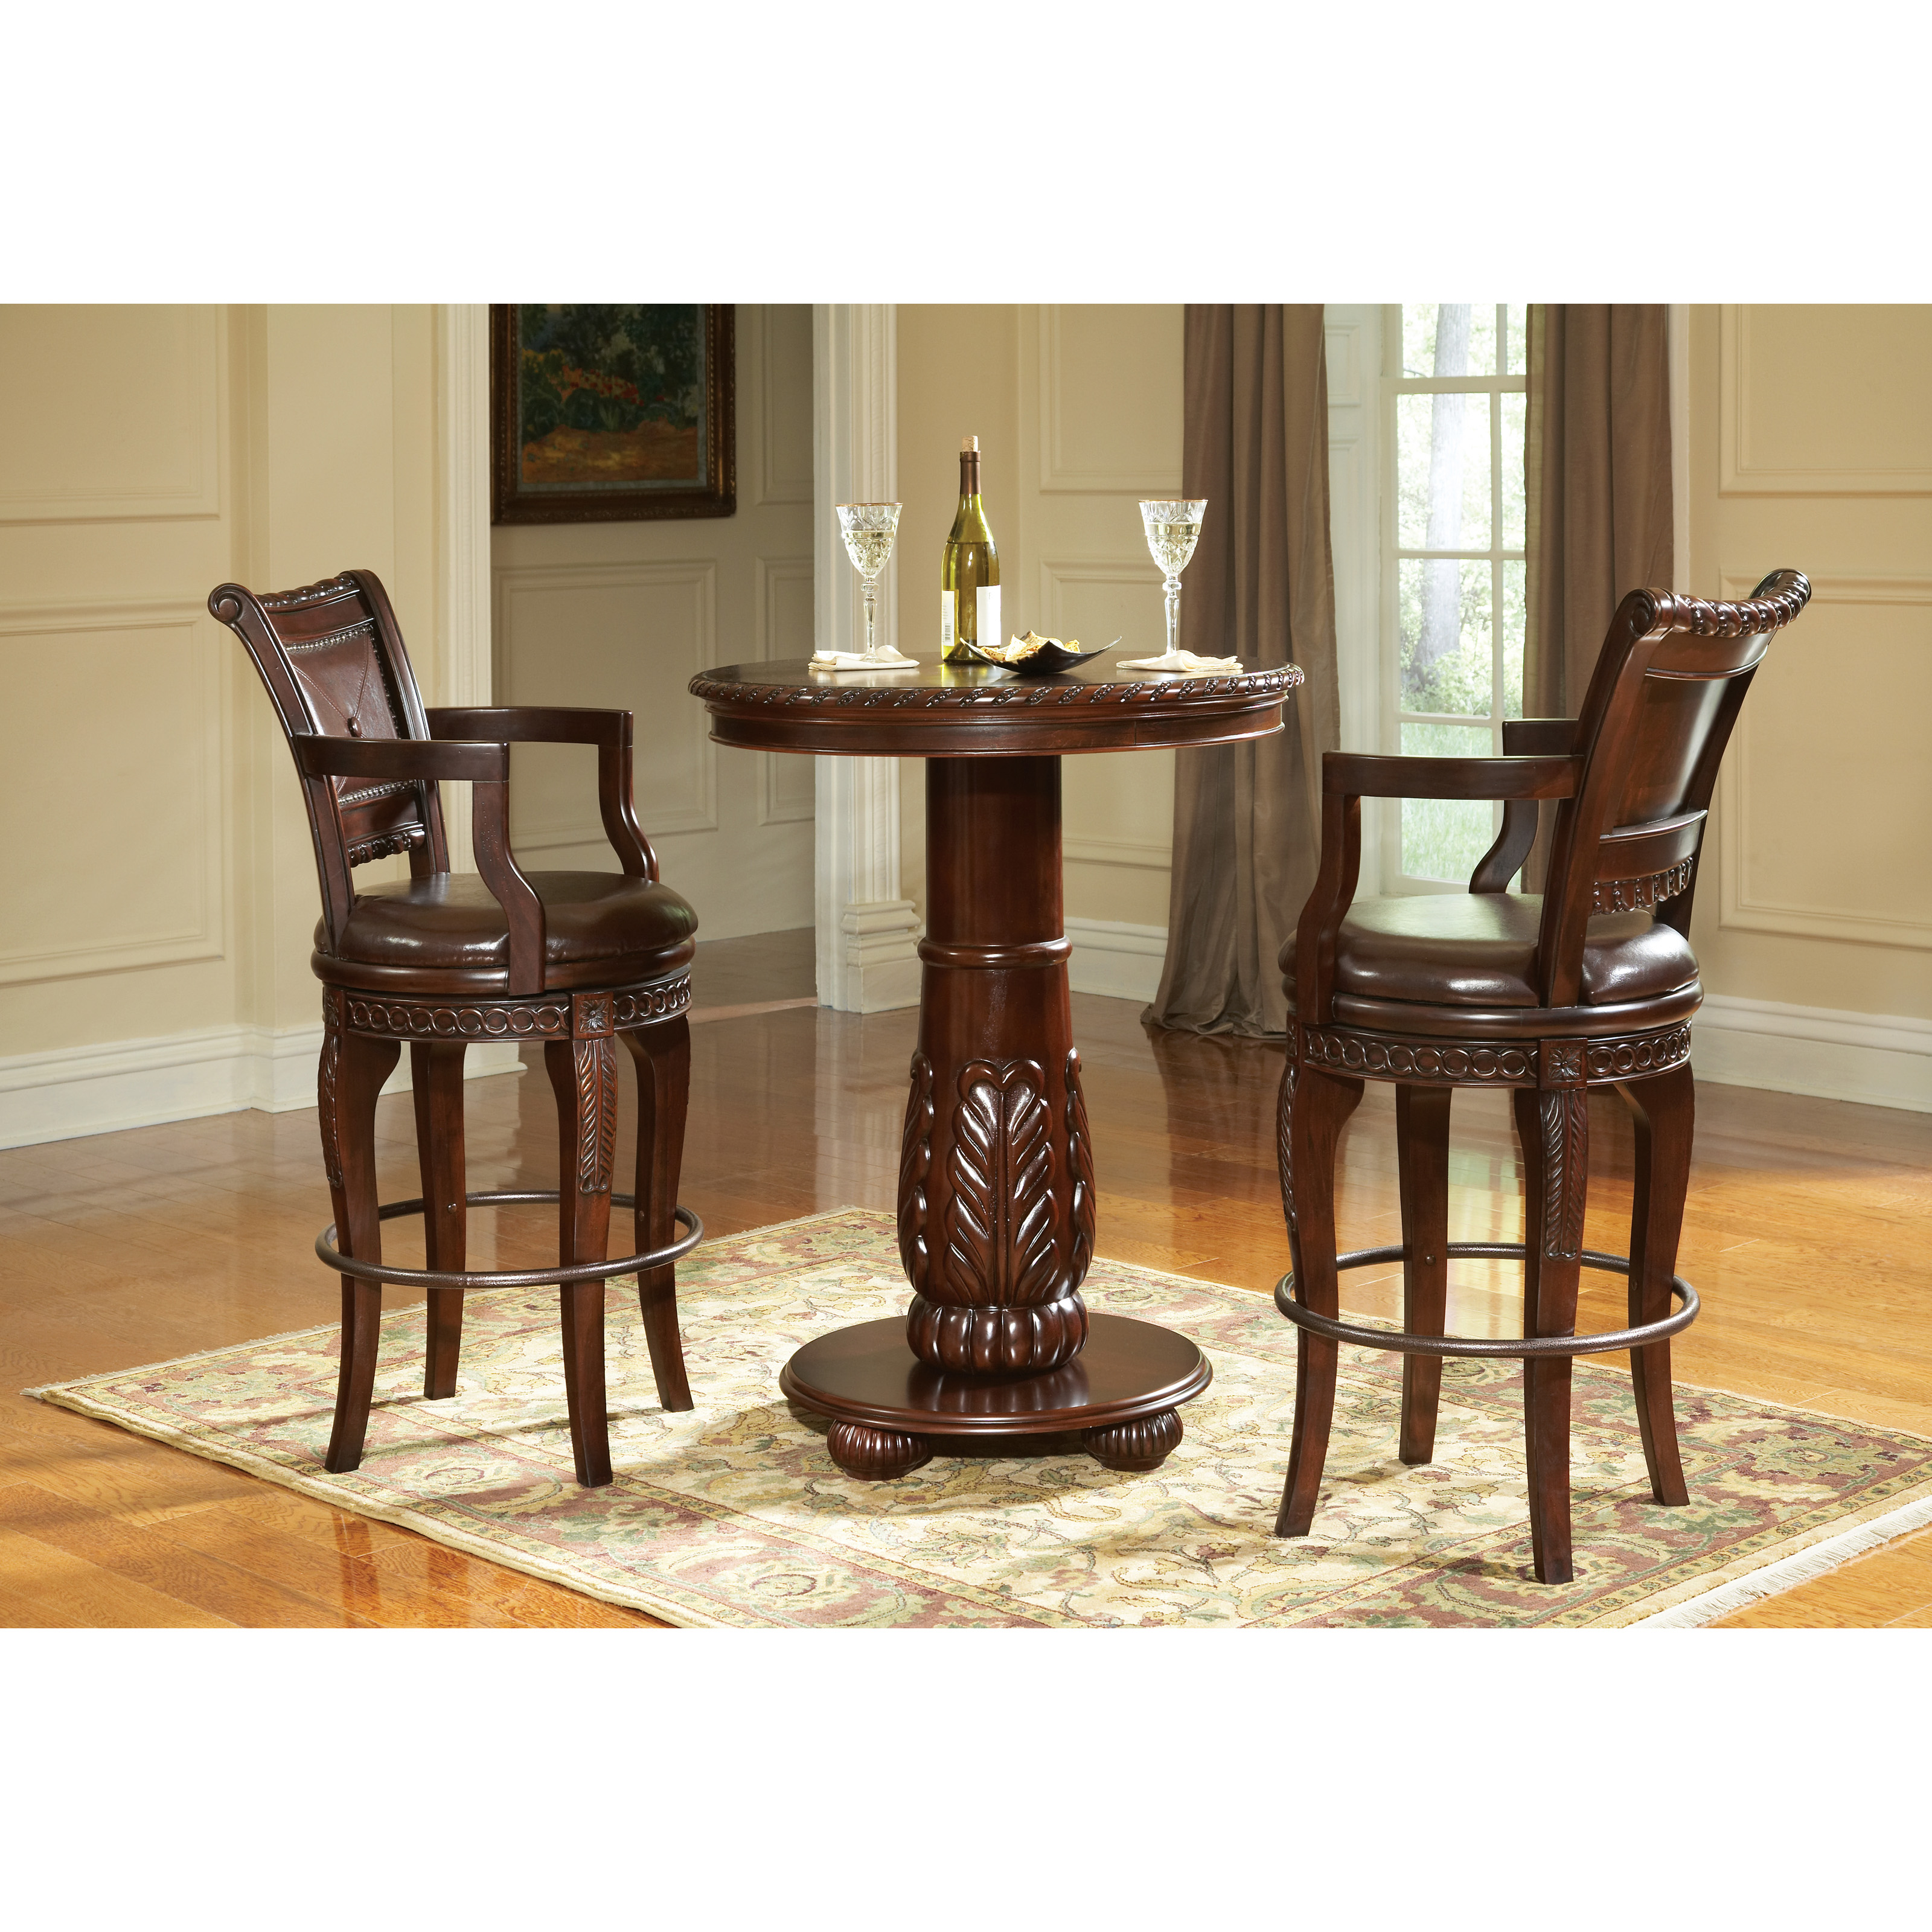 Steve Silver Antoinette 3 Piece Pub Table Set Cherry